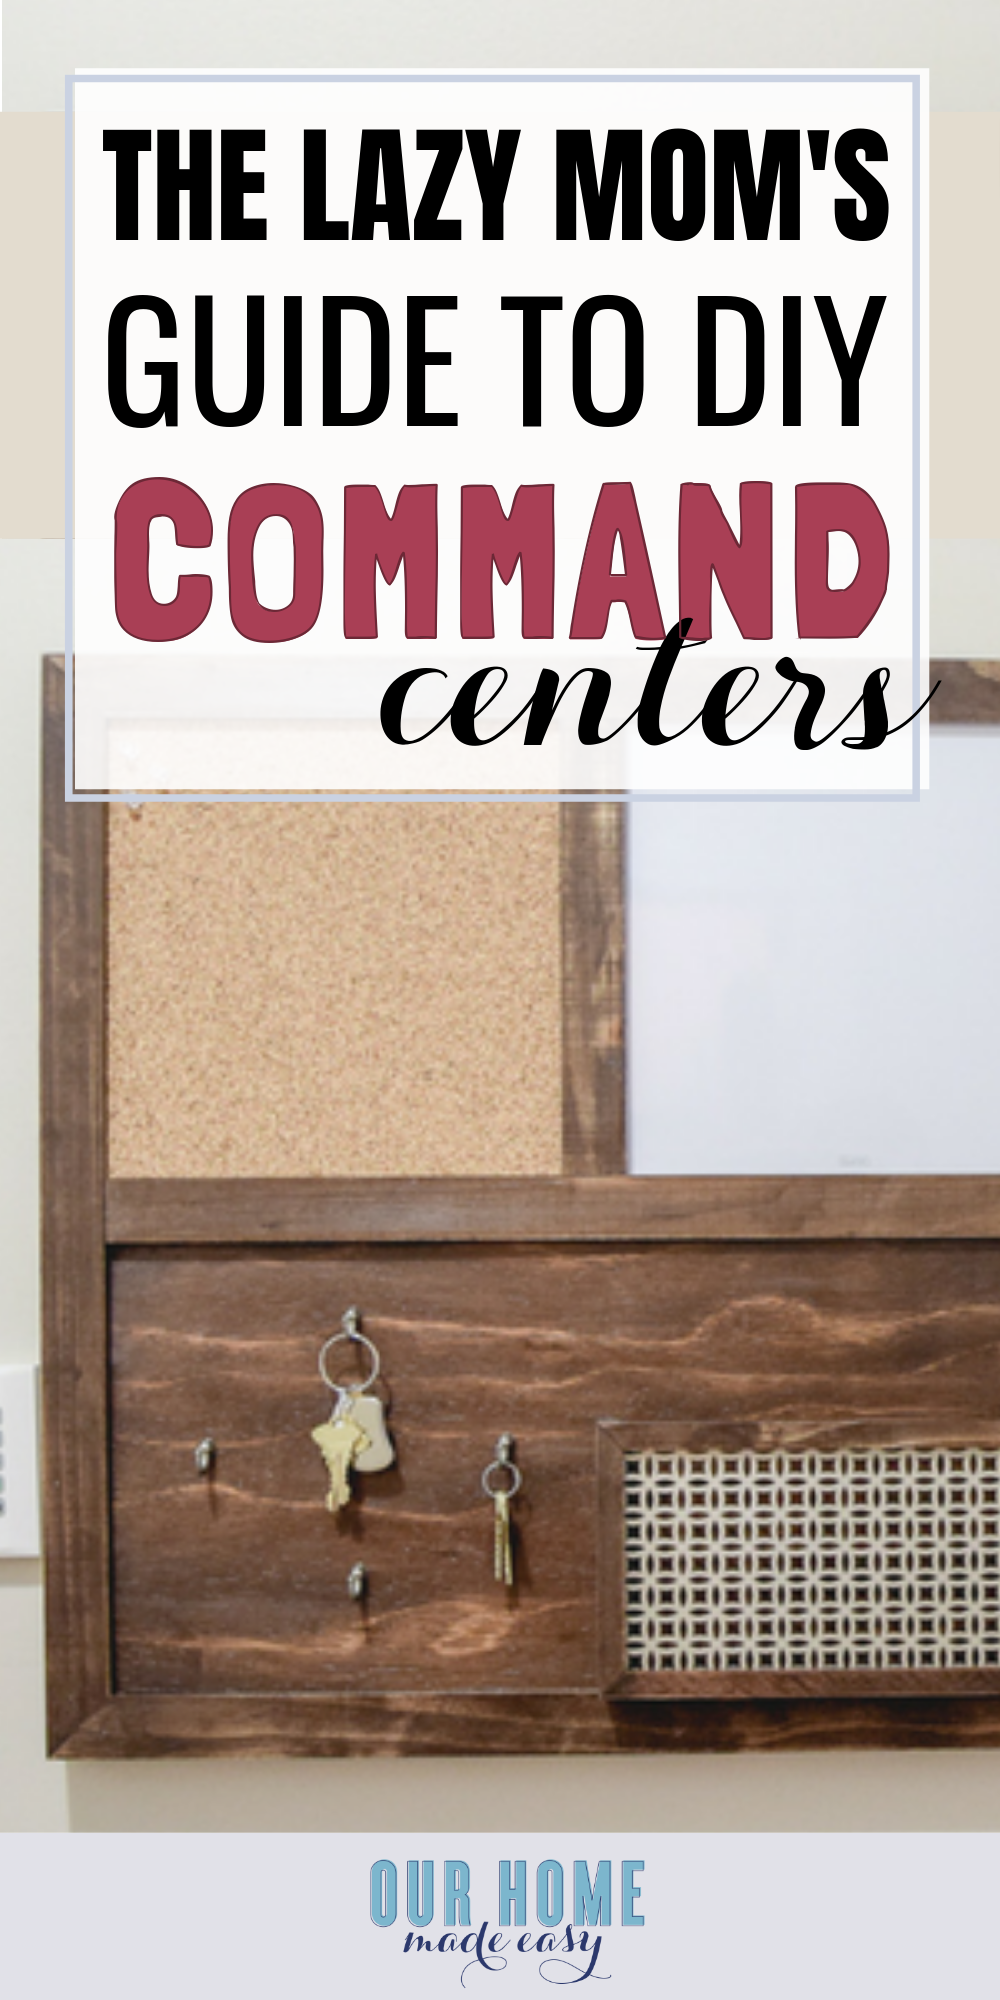 The Lazy Mom's Guide to a DIY Command Center